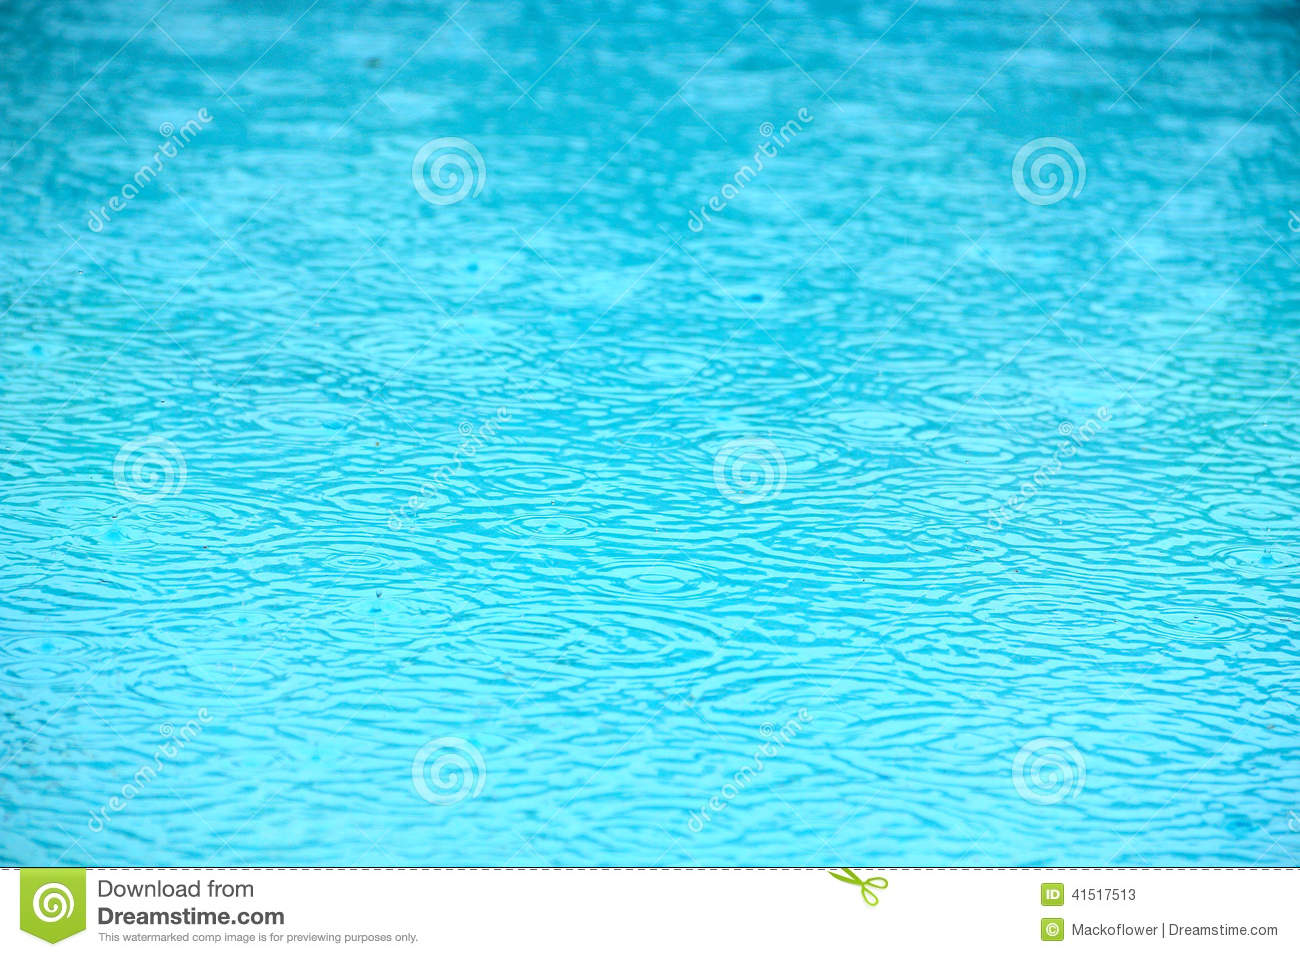 Pool Water Texture rain pool water texture stock photo - image: 41517513